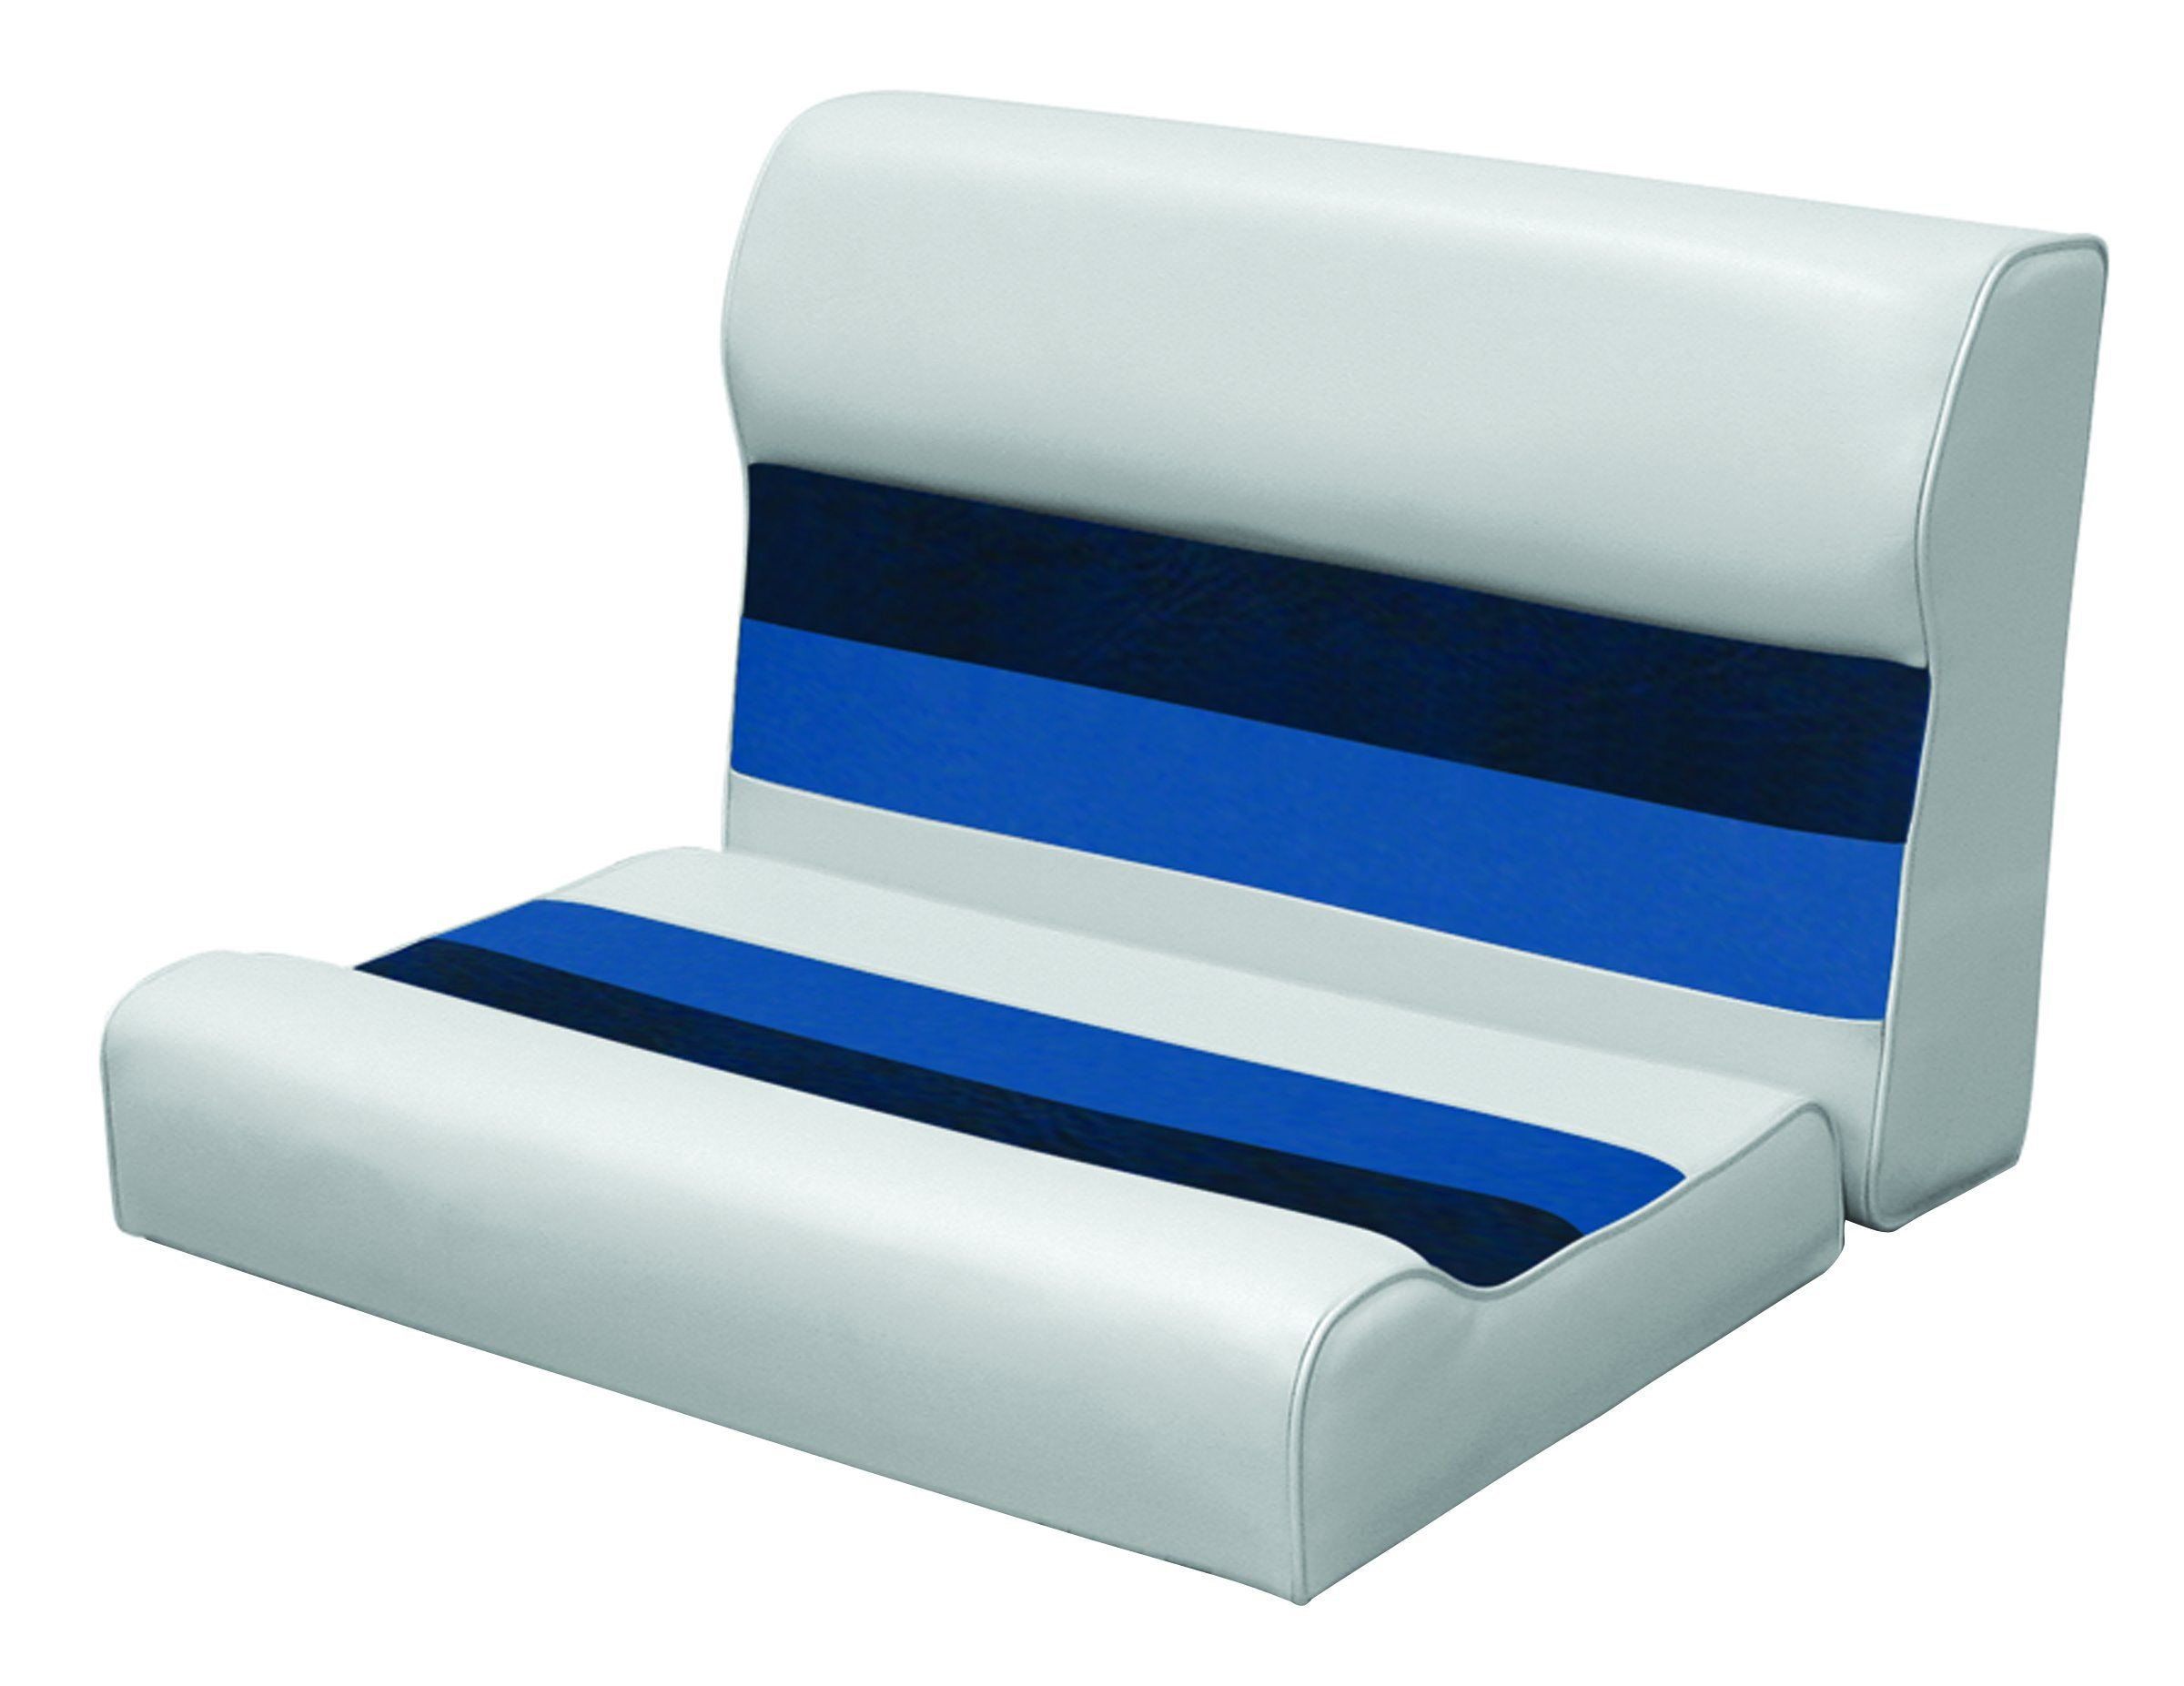 Wise 8WD95-1011 28'' Pontoon Bench Seat Cushion Only, Gray-Navy-Blue; Requires #8WD95-1B-221 Base to Complete